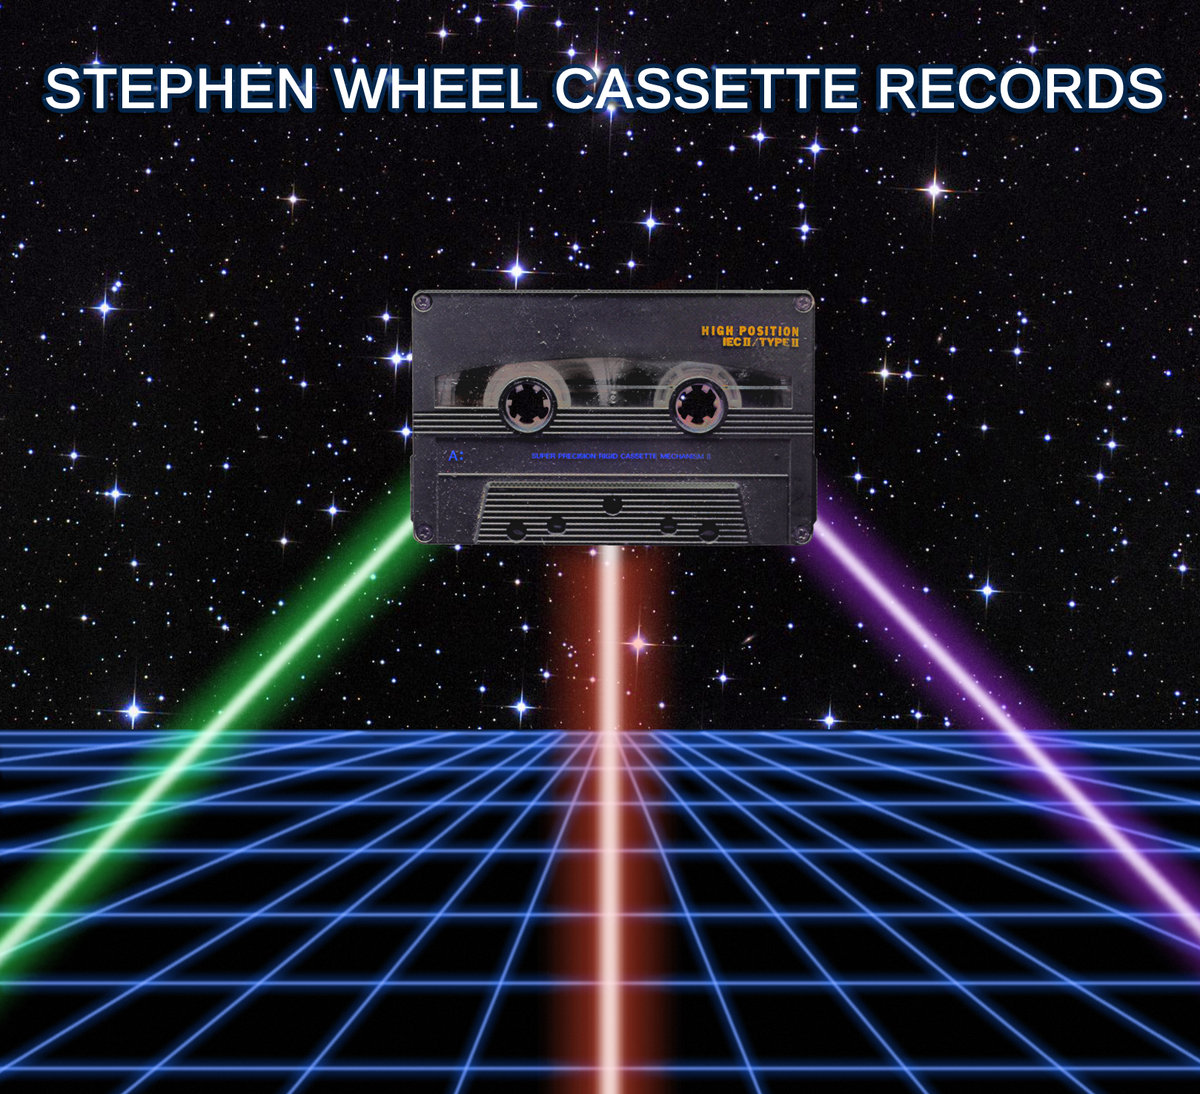 Stephen Wheel, Cassette Records